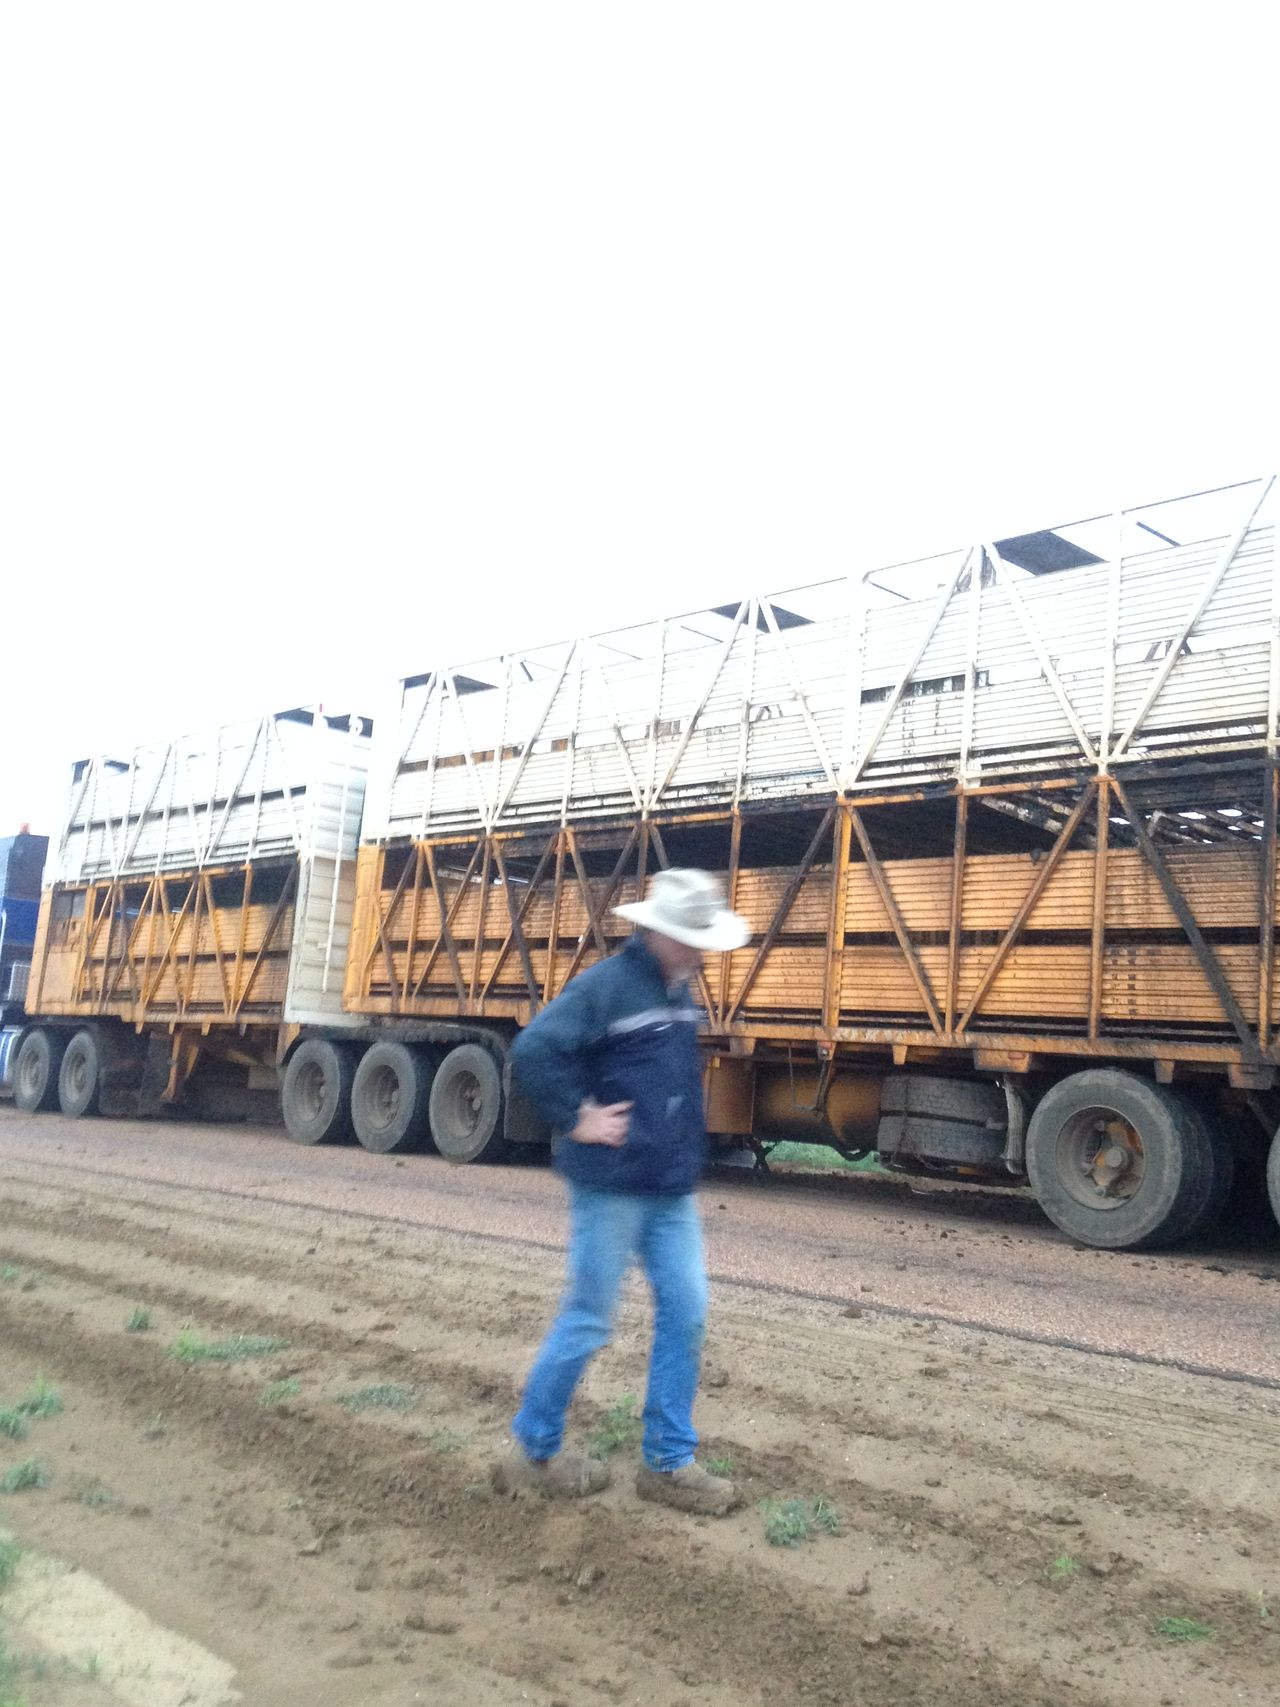 Casual Clothing Cattle Cattle Farm Clear Sky Contemplation Cowboy Cowboy Hat Eighteen Wheeler Full Length Land Vehicle Men Mode Of Transport Outdoors Prime Mover Road Semitrailer Side View Street Tranquility Transportation Truck Trucking Australia Truckinglife Unloading Station Walking